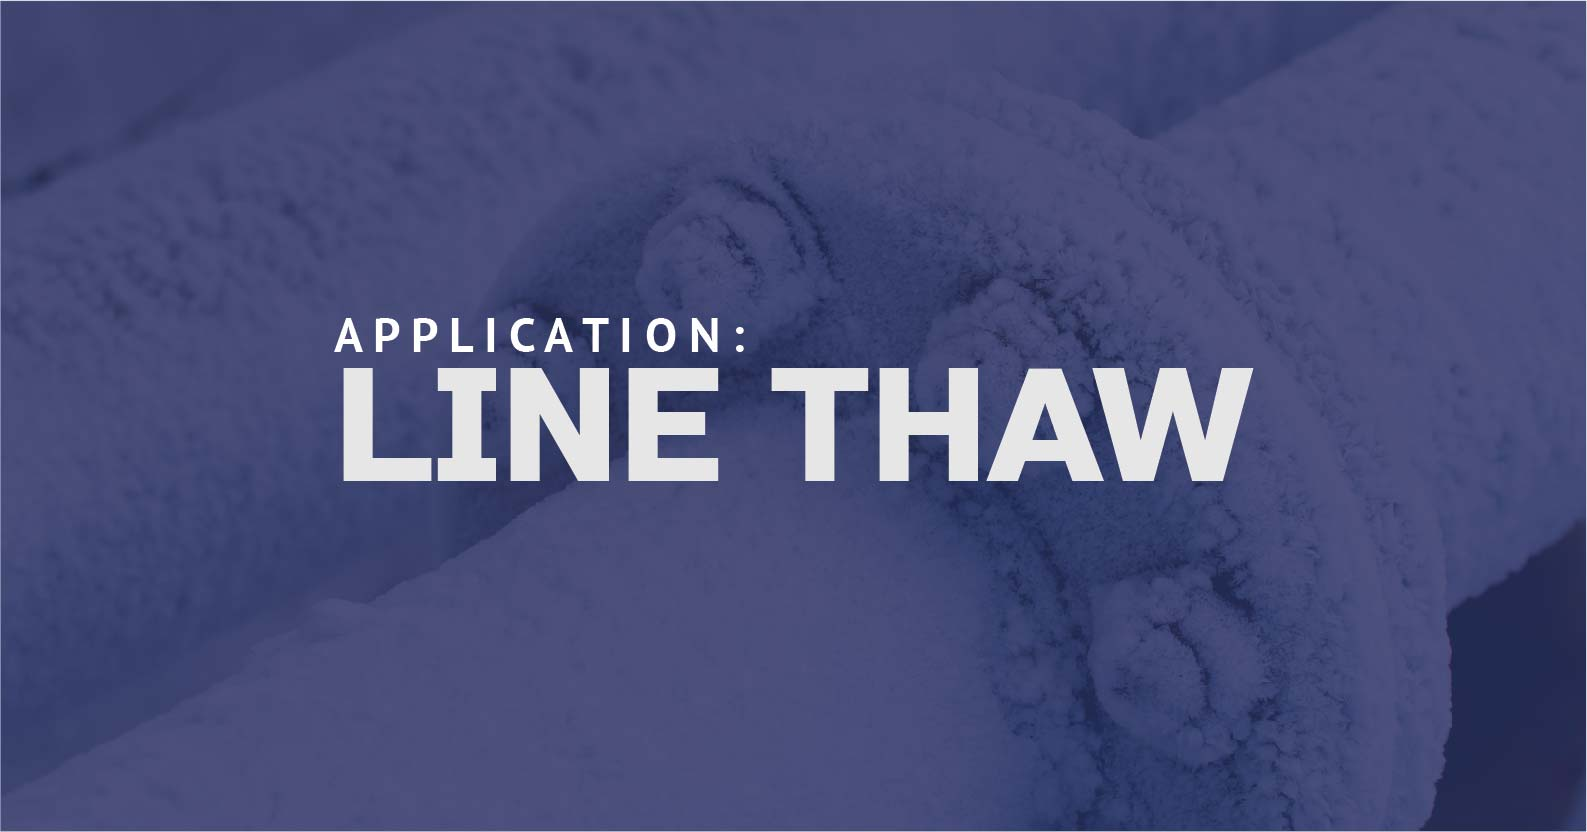 Line Thaw